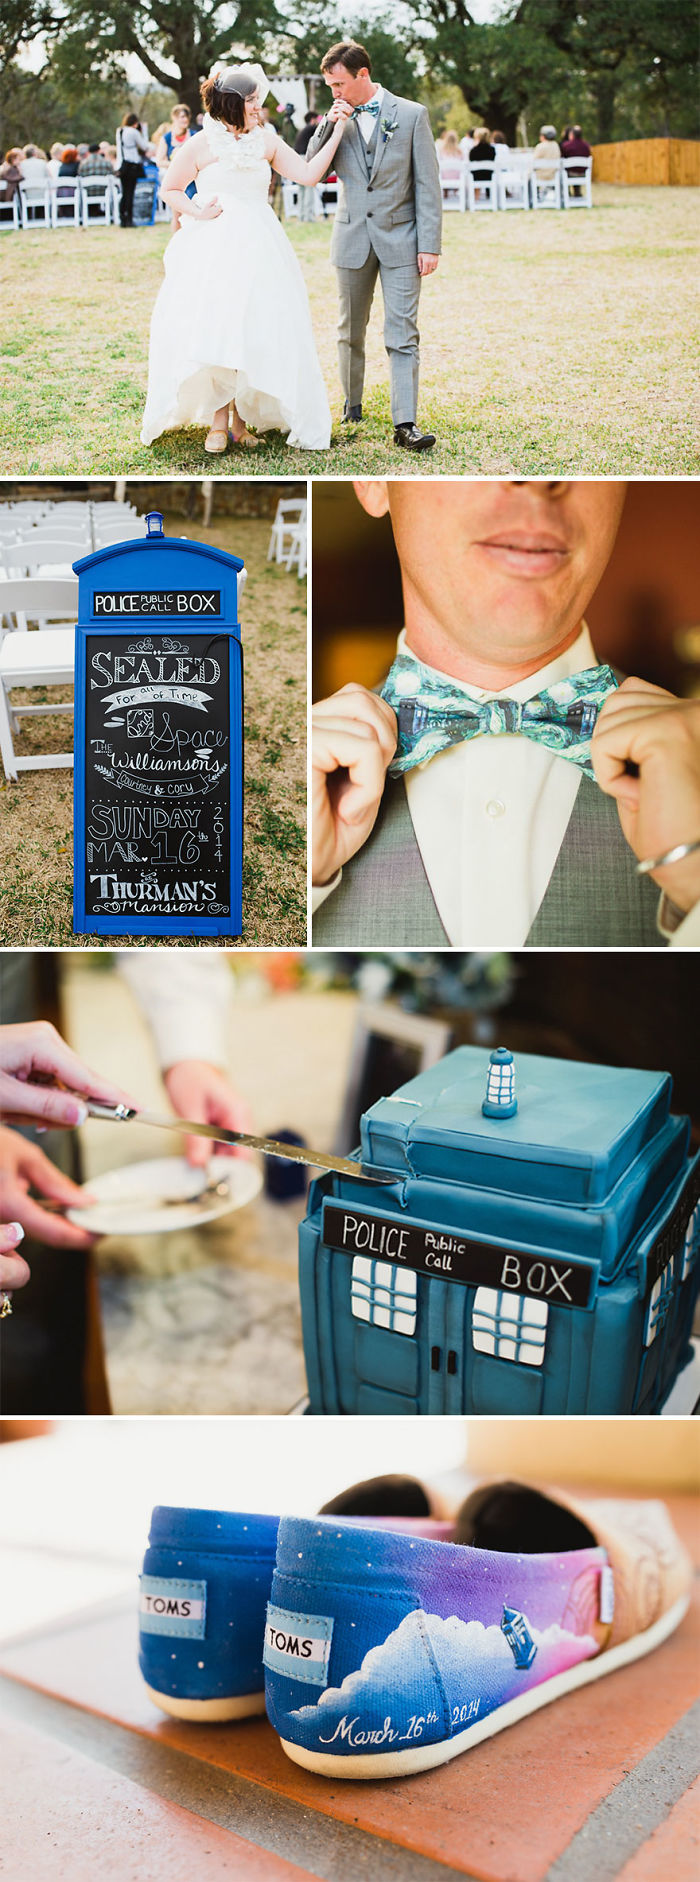 Doctor Who Themed Wedding